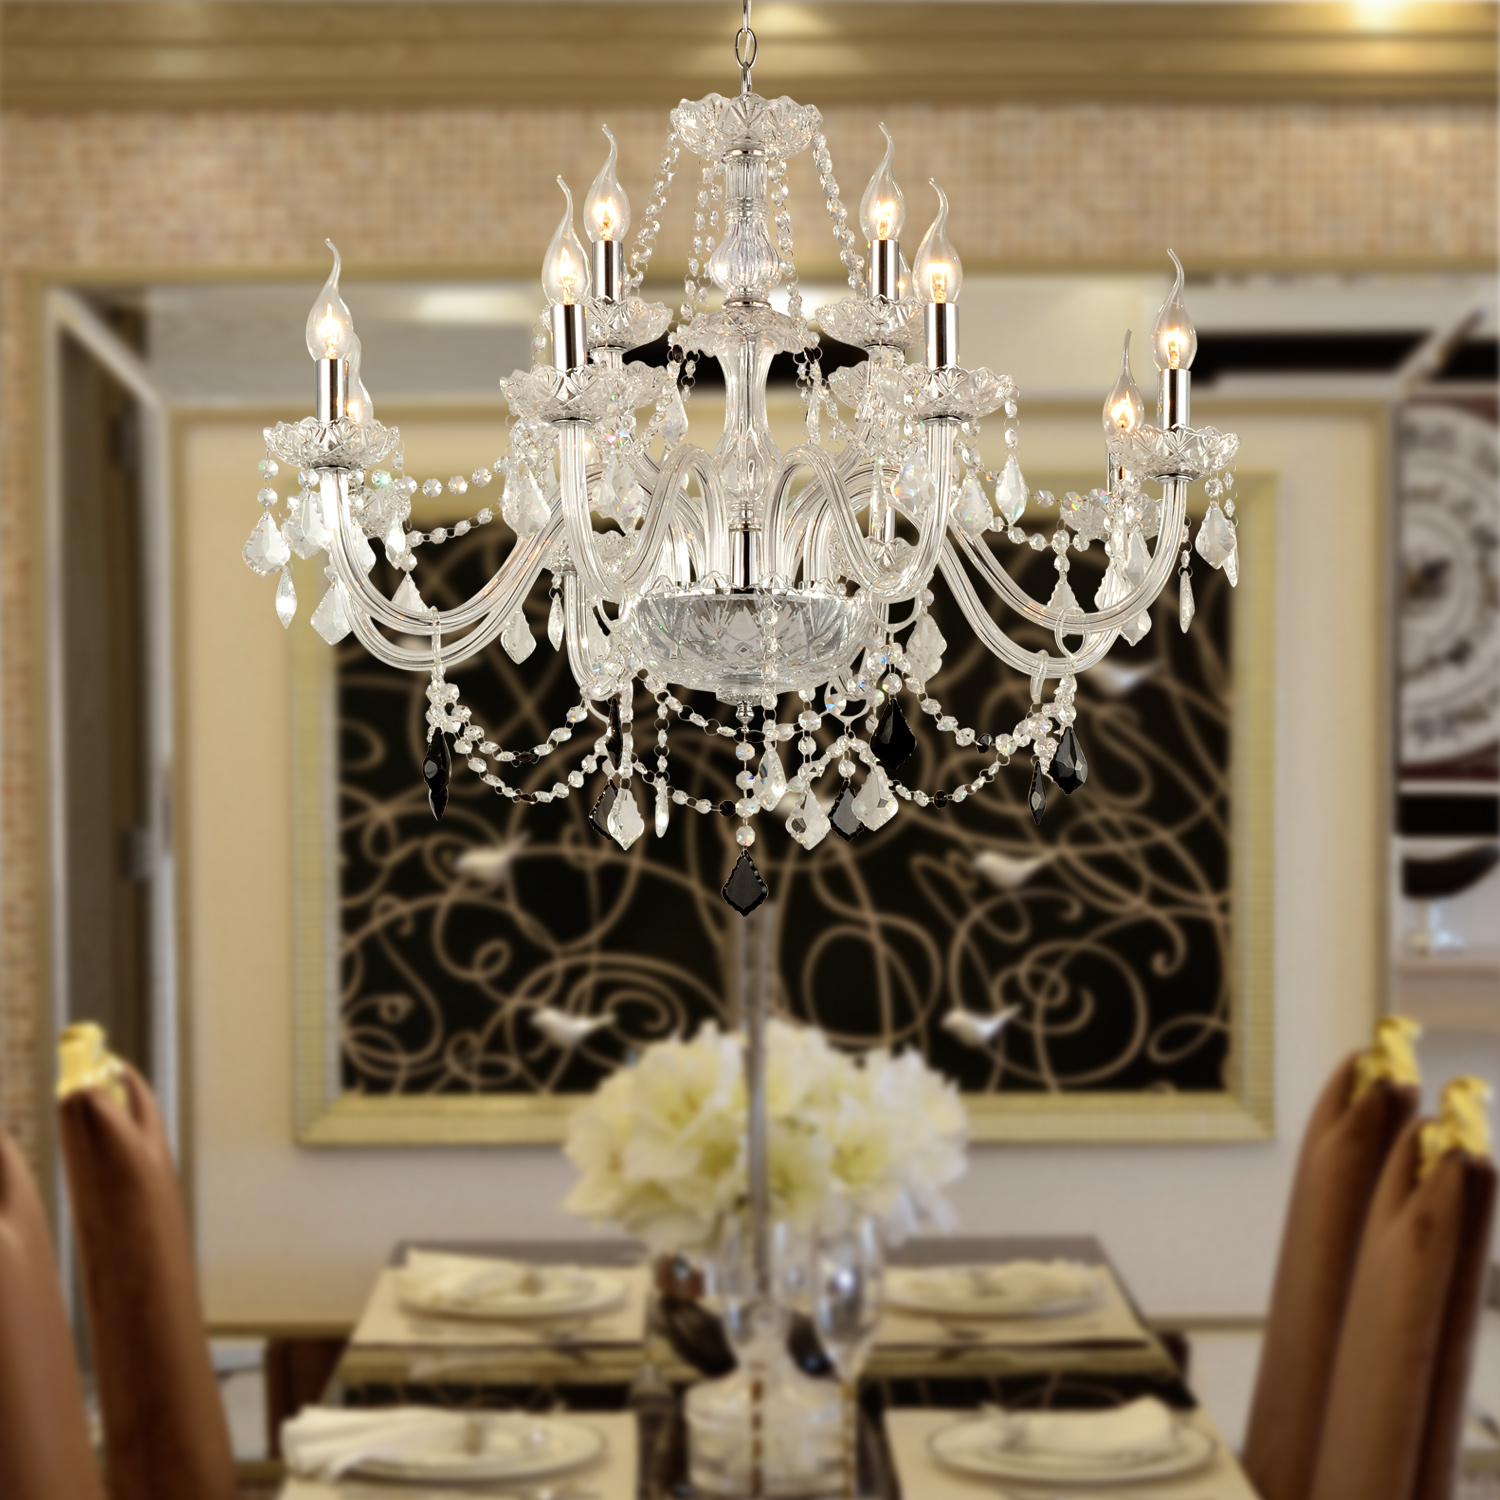 Glass Chandeliers For Dining Room: 12 LIGHT VENETIAN MURANO STYLE CRYSTAL CHANDELIER KITCHEN